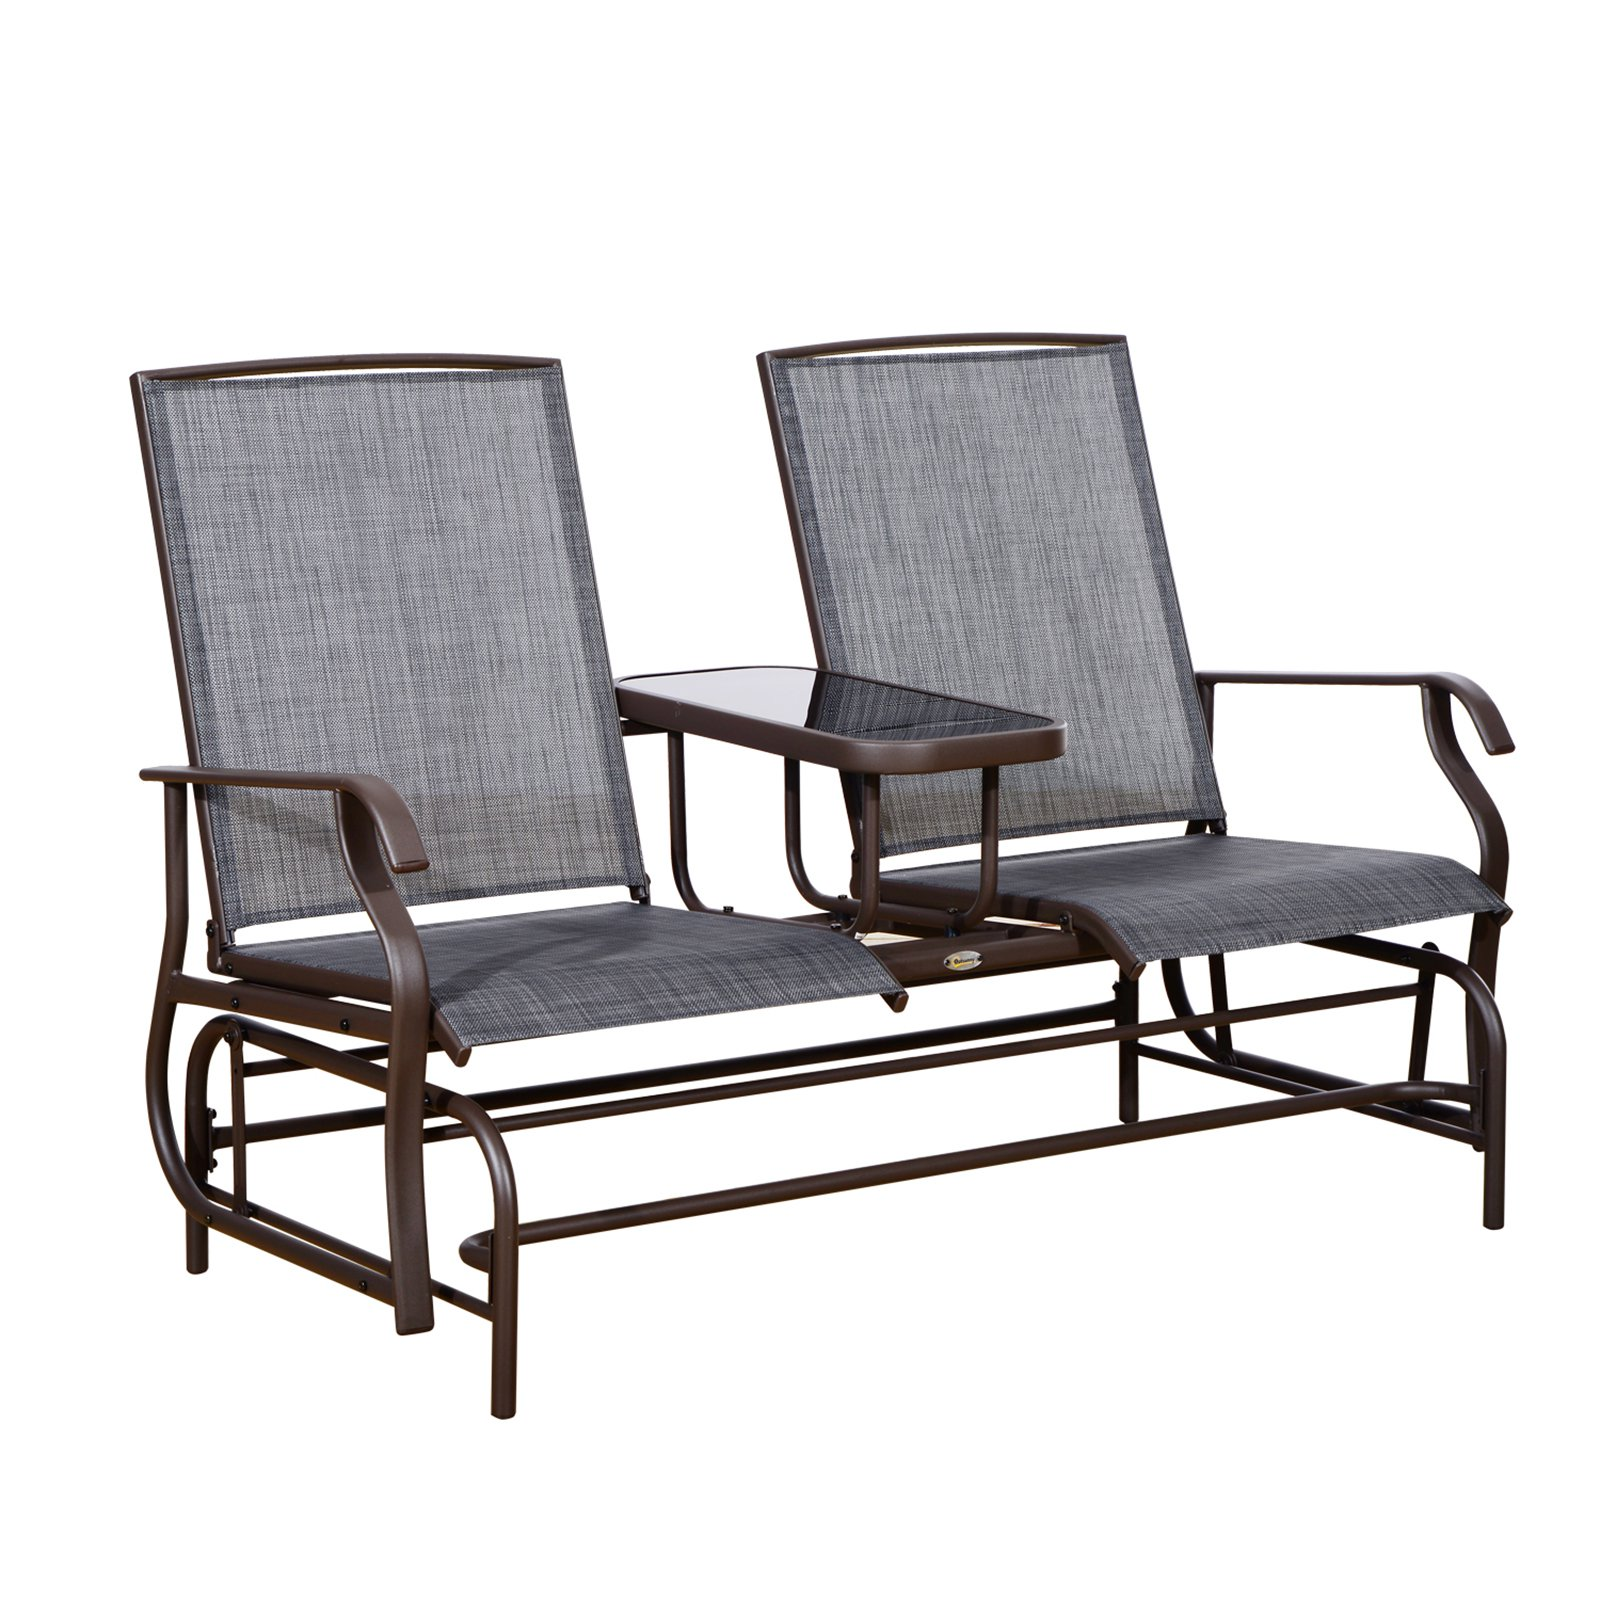 Outsunny 2 Person Mesh Fabric Patio Double Glider Chair with Center Table - Brown